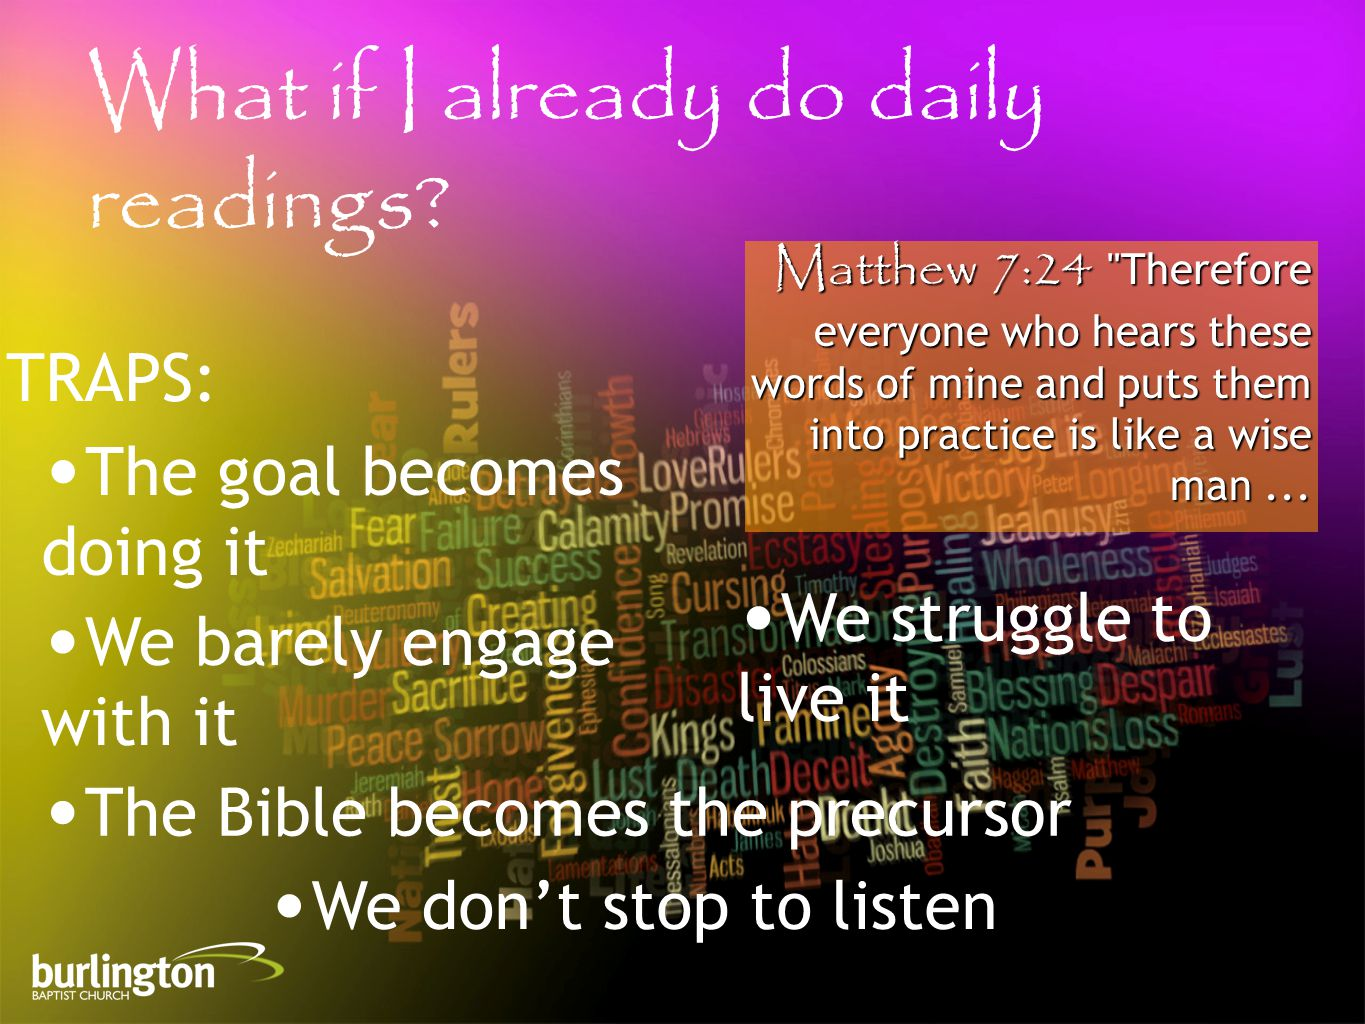 Matthew 7:24 Therefore everyone who hears these words of mine and puts them into practice is like a wise man...